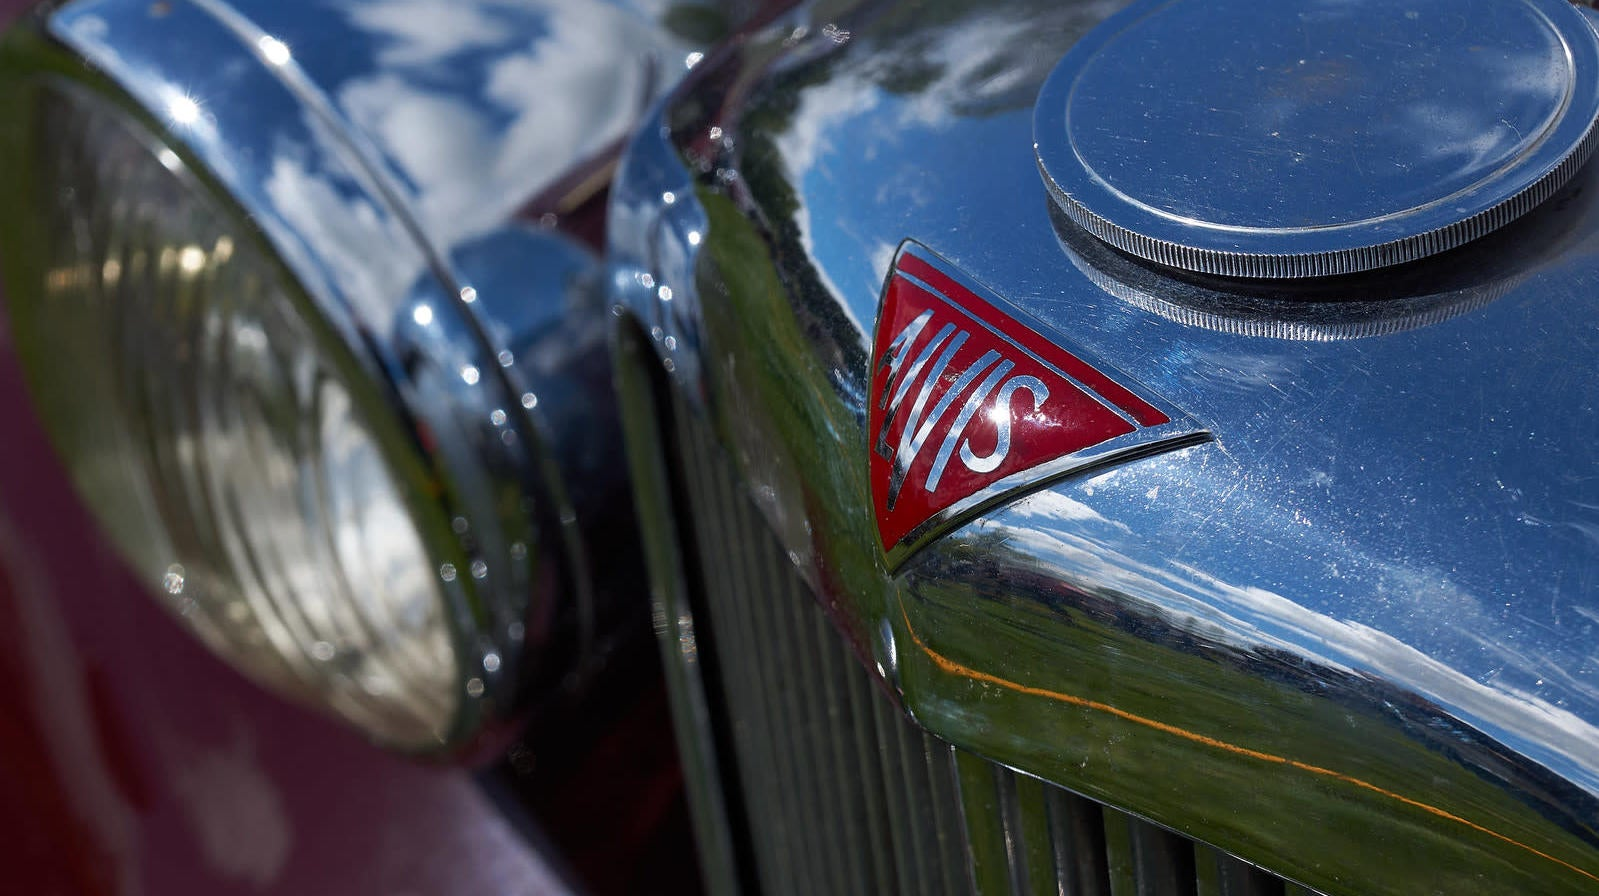 100 Years Ago This Company Made Up A Meaningless Name And Started Making Cutting-Edge Cars